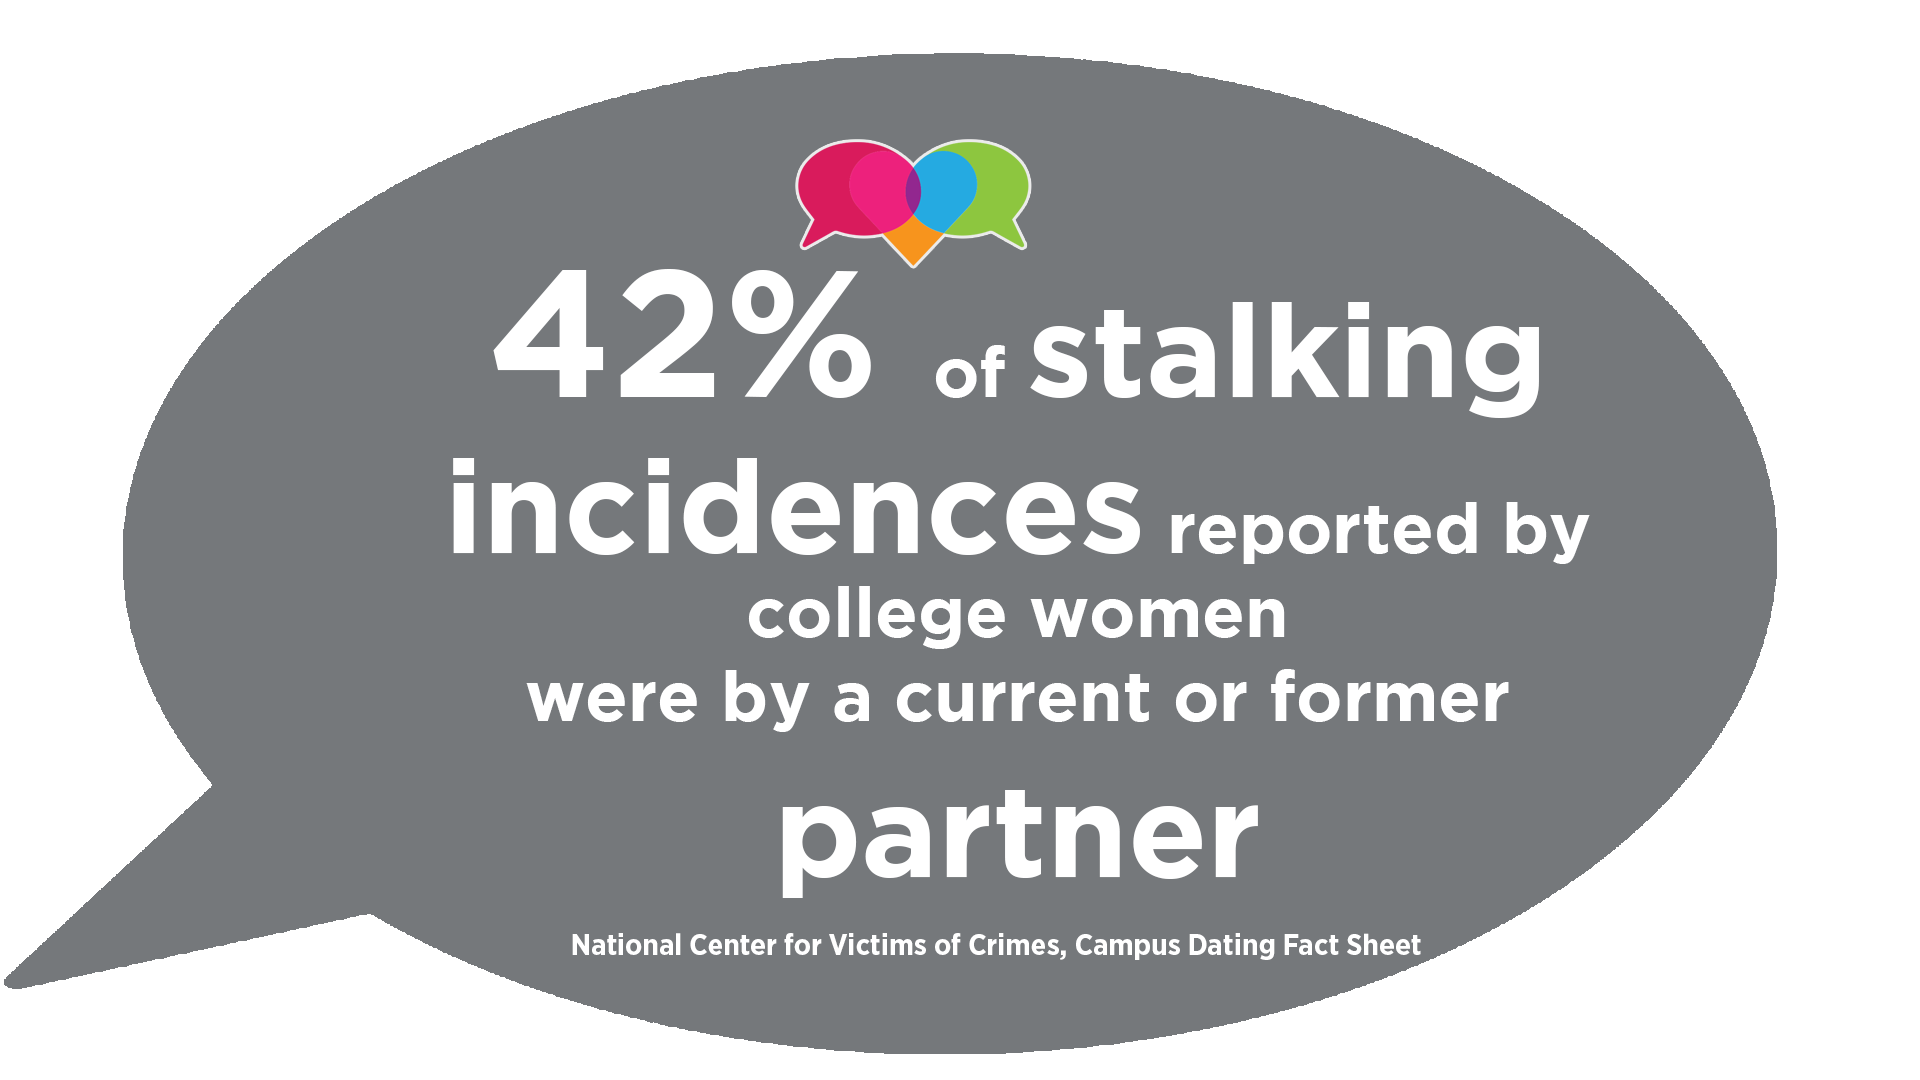 42% of stalking incidences reported by college women were by a current or former partner